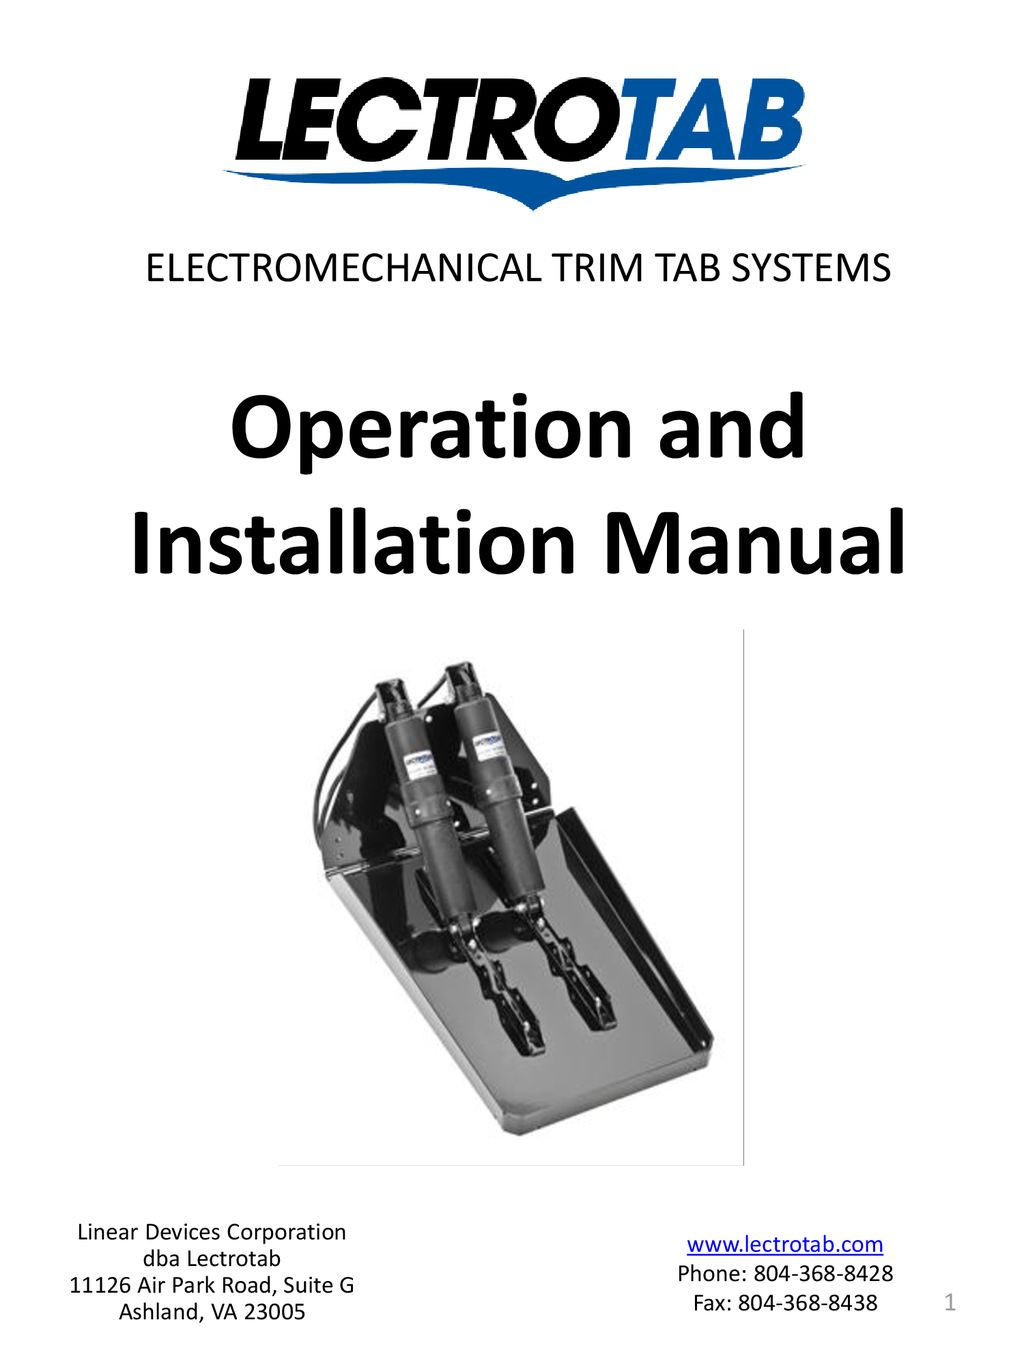 Operation And Installation Manual Ppt Download Boat Trim Tabs Wiring Diagram